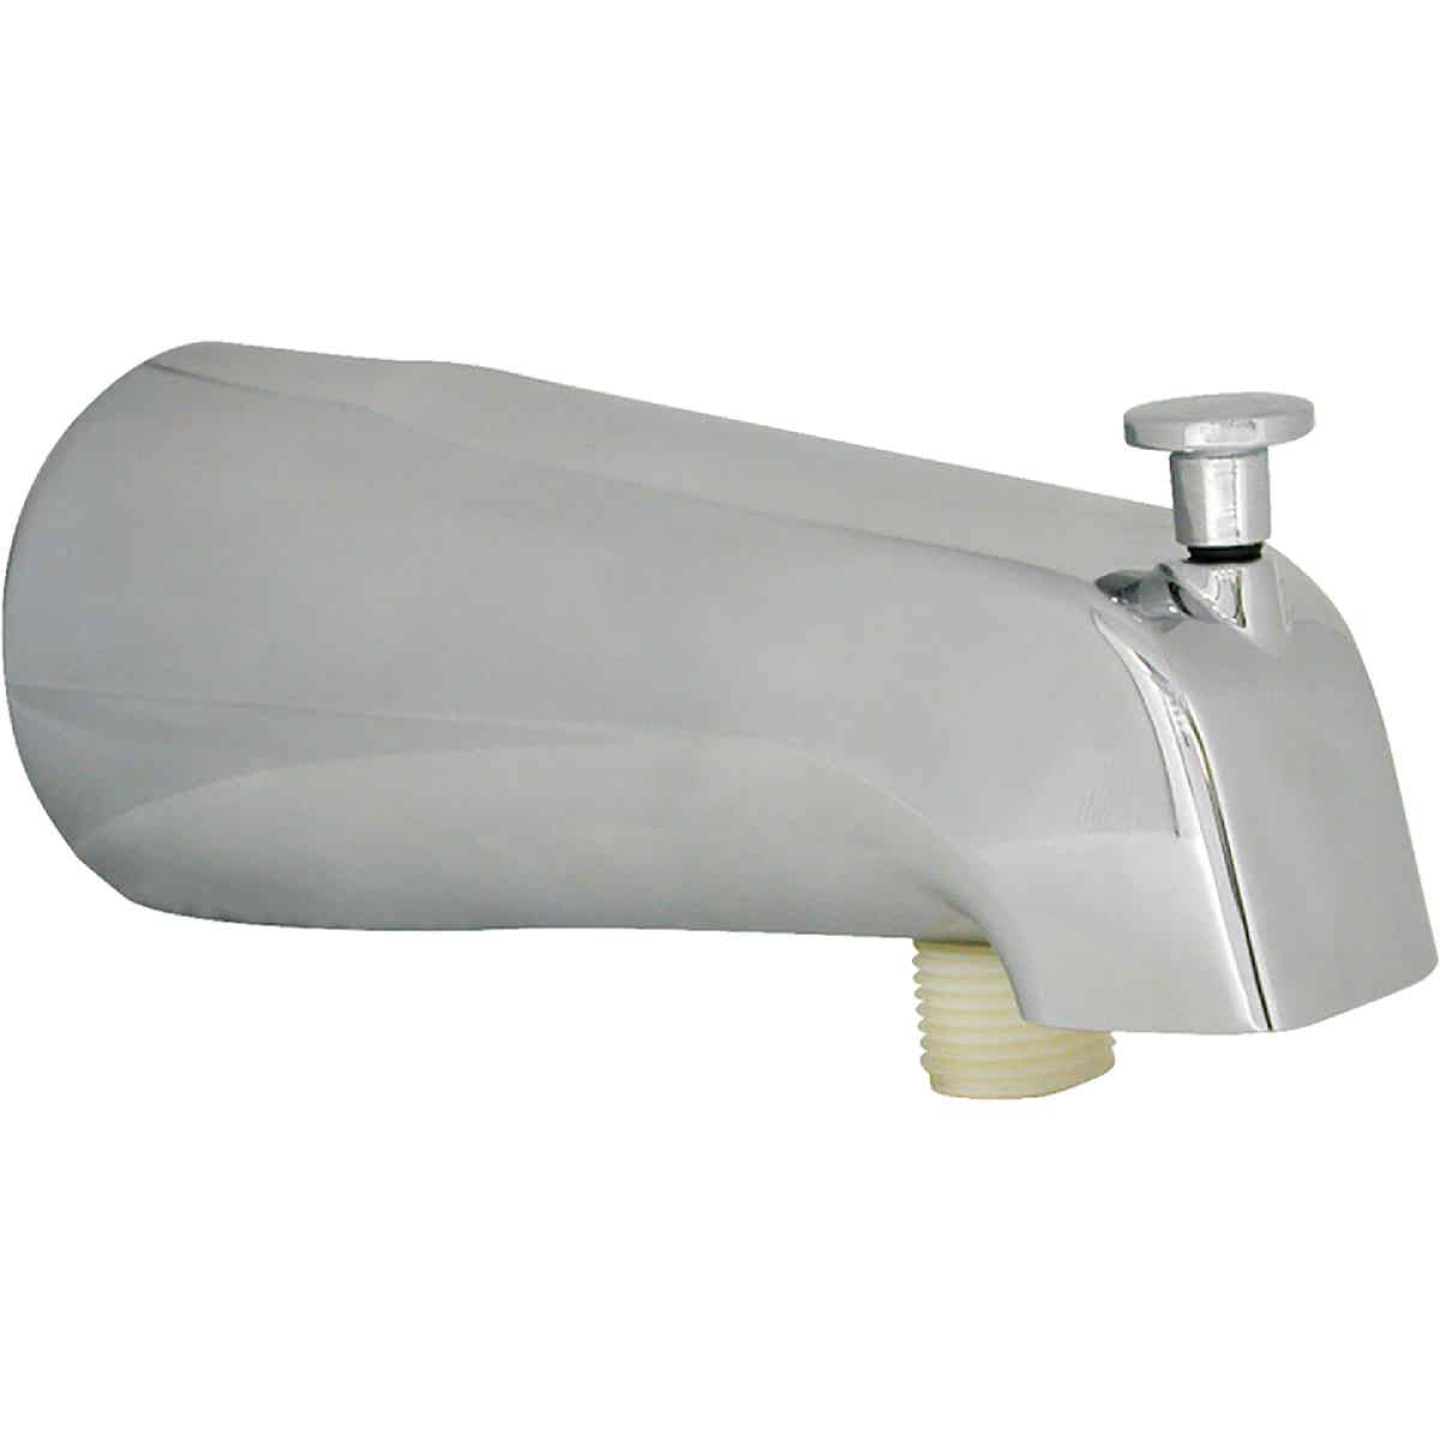 Danco 5 In. Chrome Bathtub Spout with Diverter Image 1